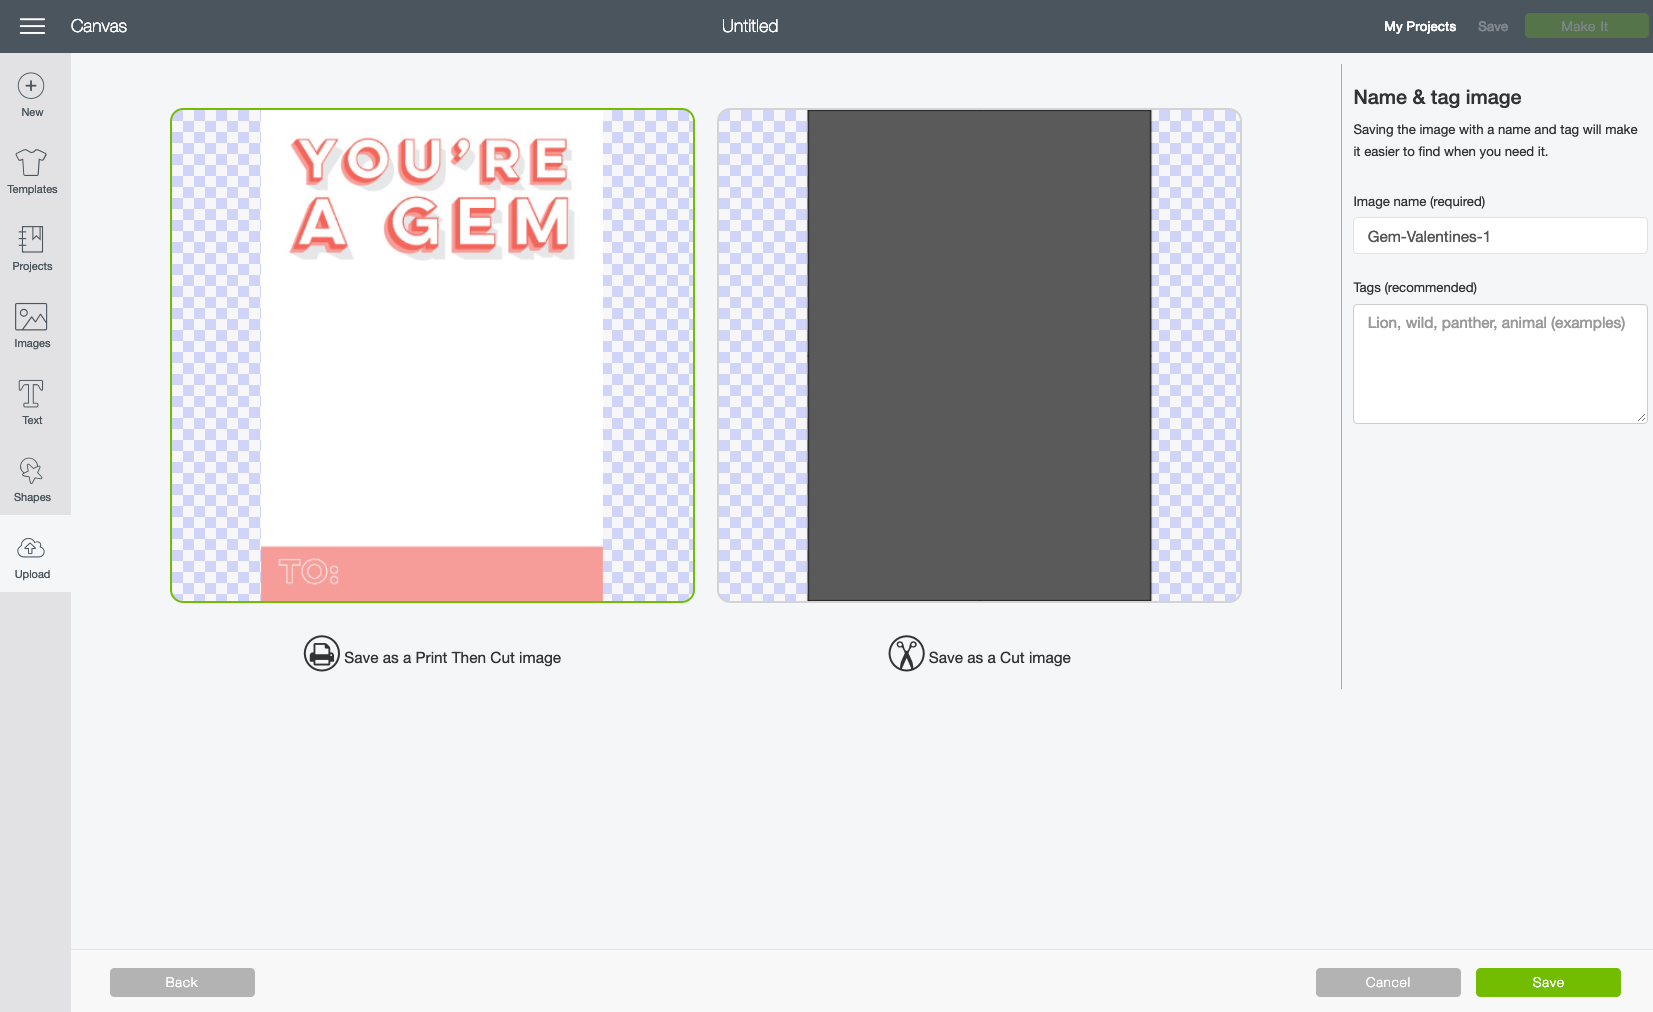 In the Name & Tag Image screen, choose Print then Cut image and click Save.